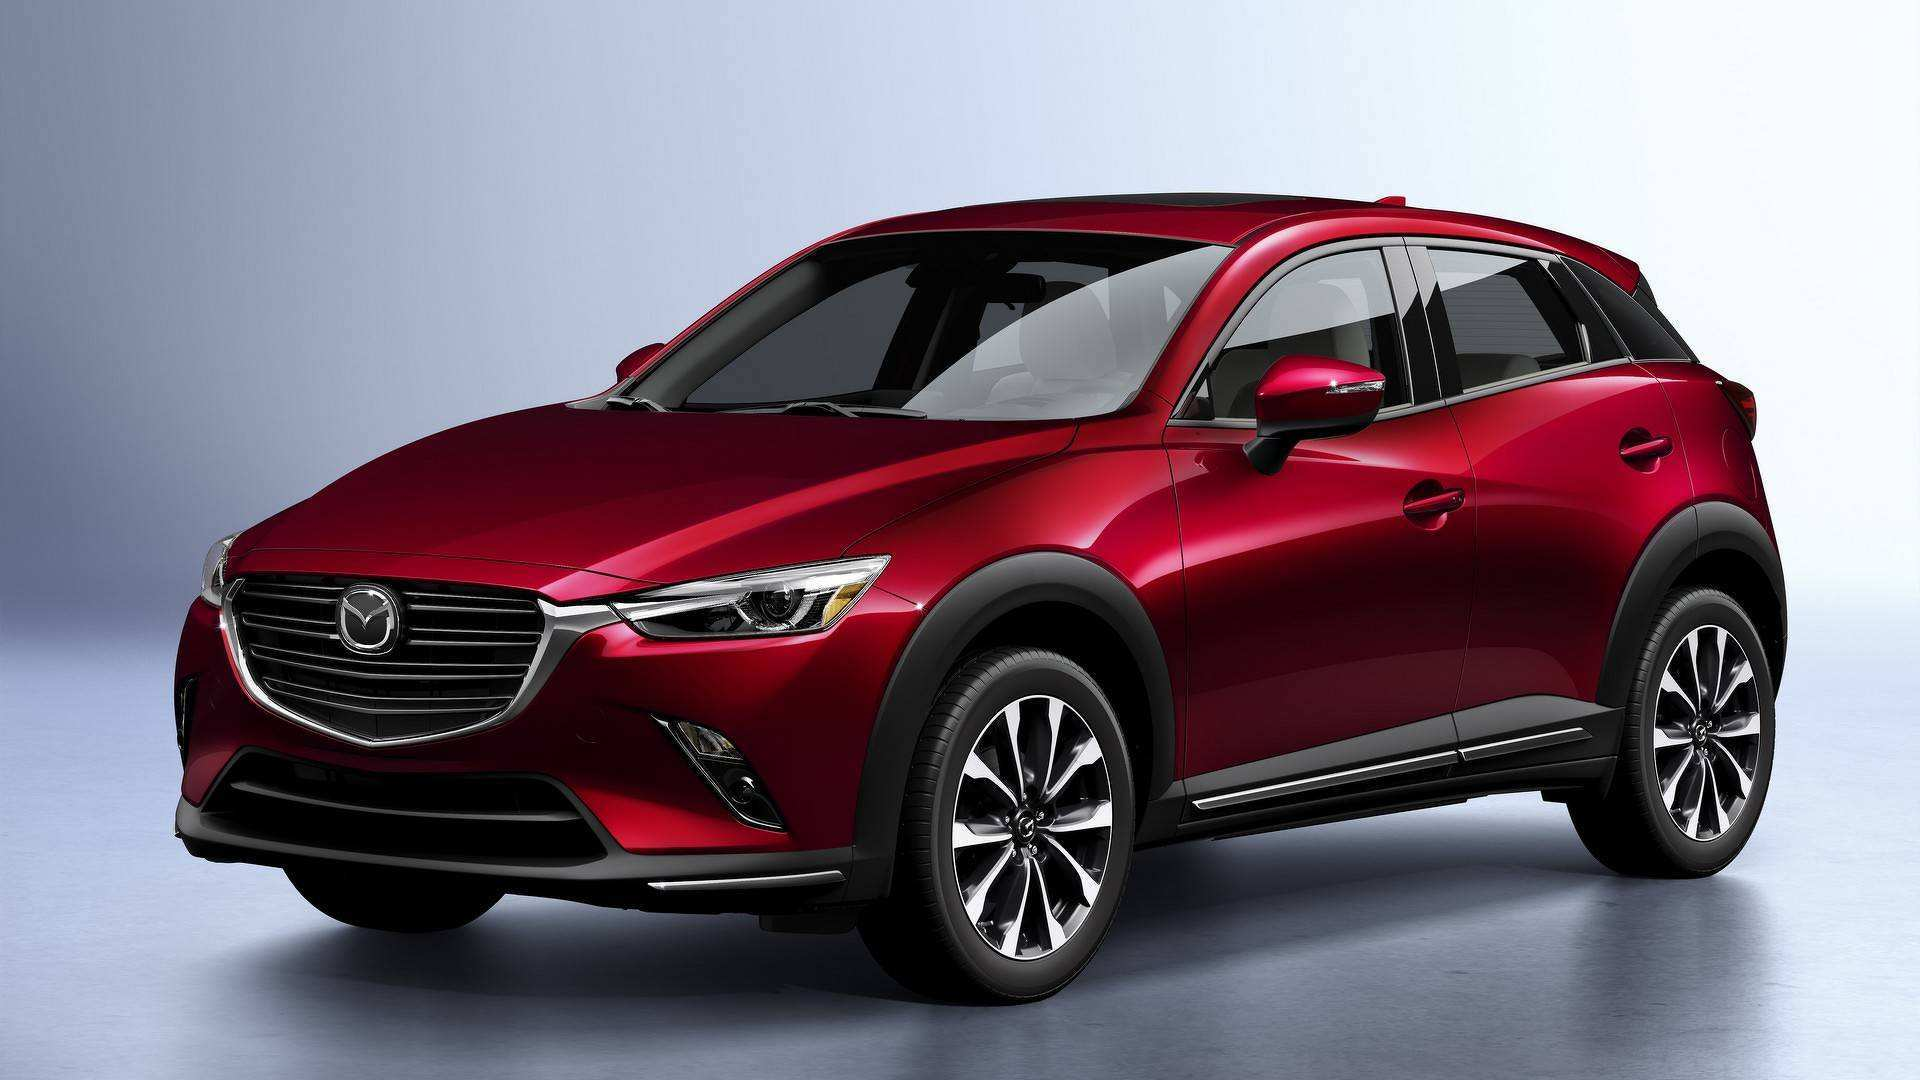 50 Great 2020 Mazda Cx 3 Configurations by 2020 Mazda Cx 3